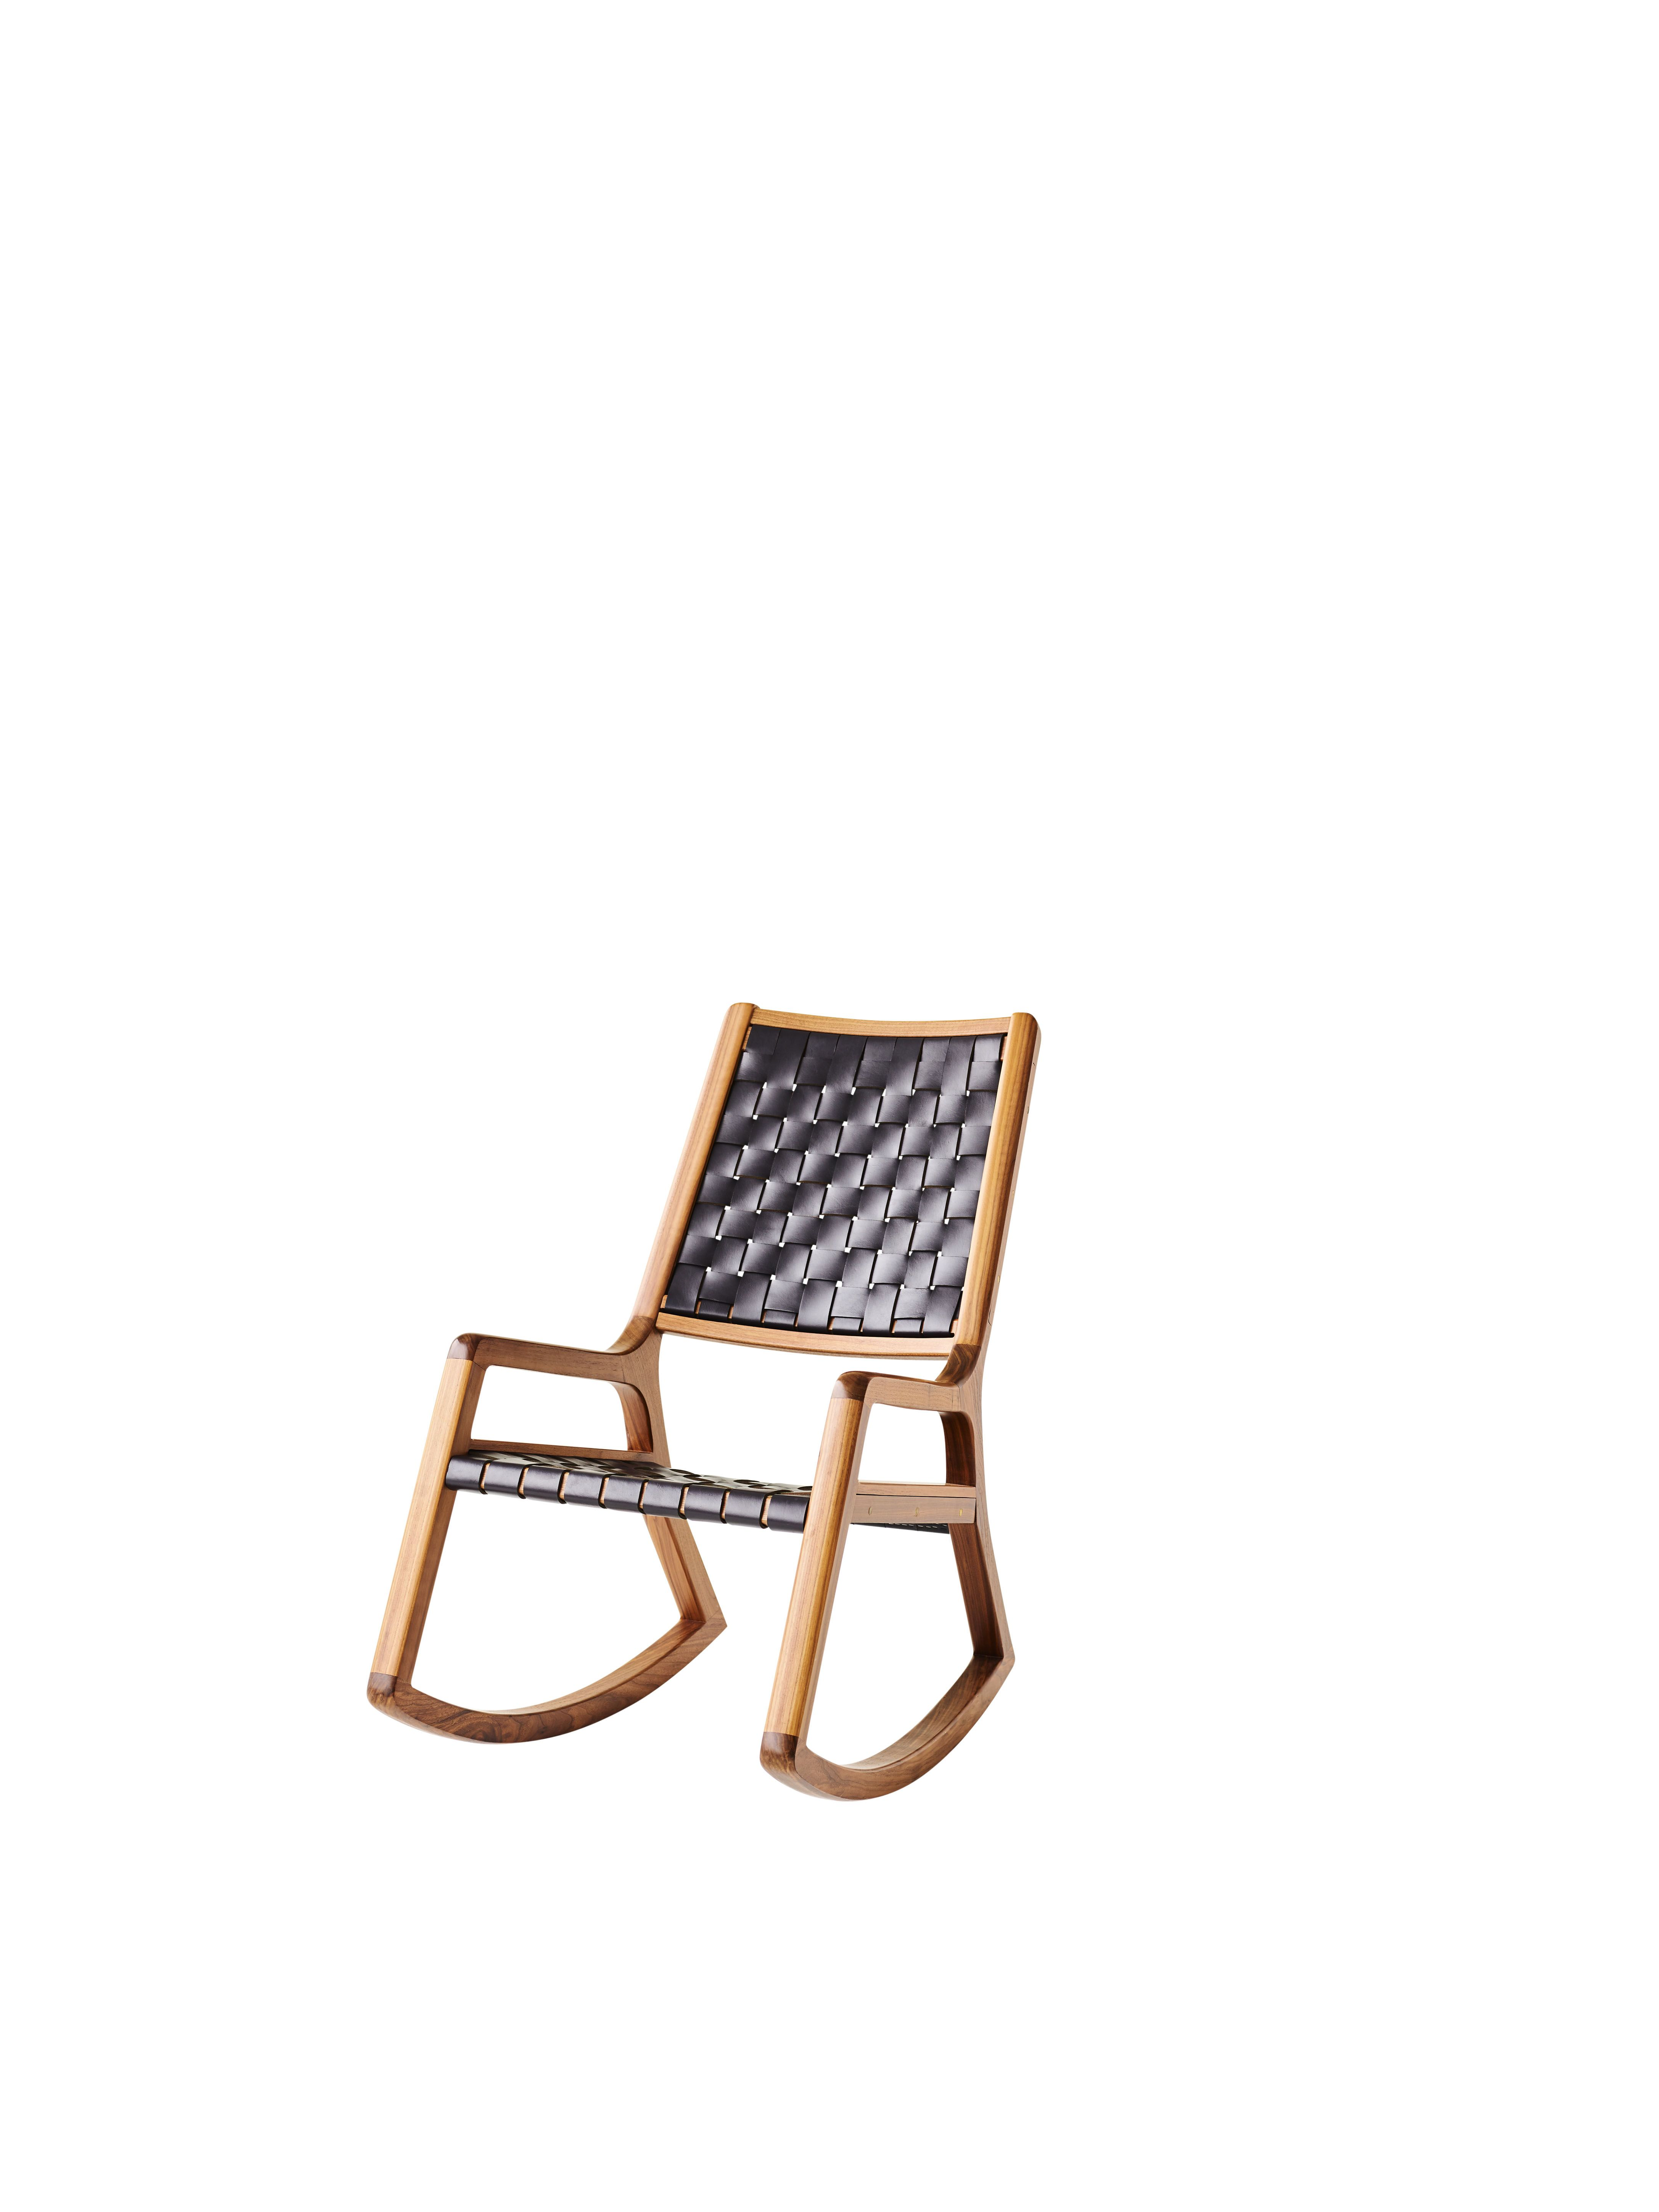 10 Rocking Chairs For Indoors Outdoors Best Rocking Chair Ideas